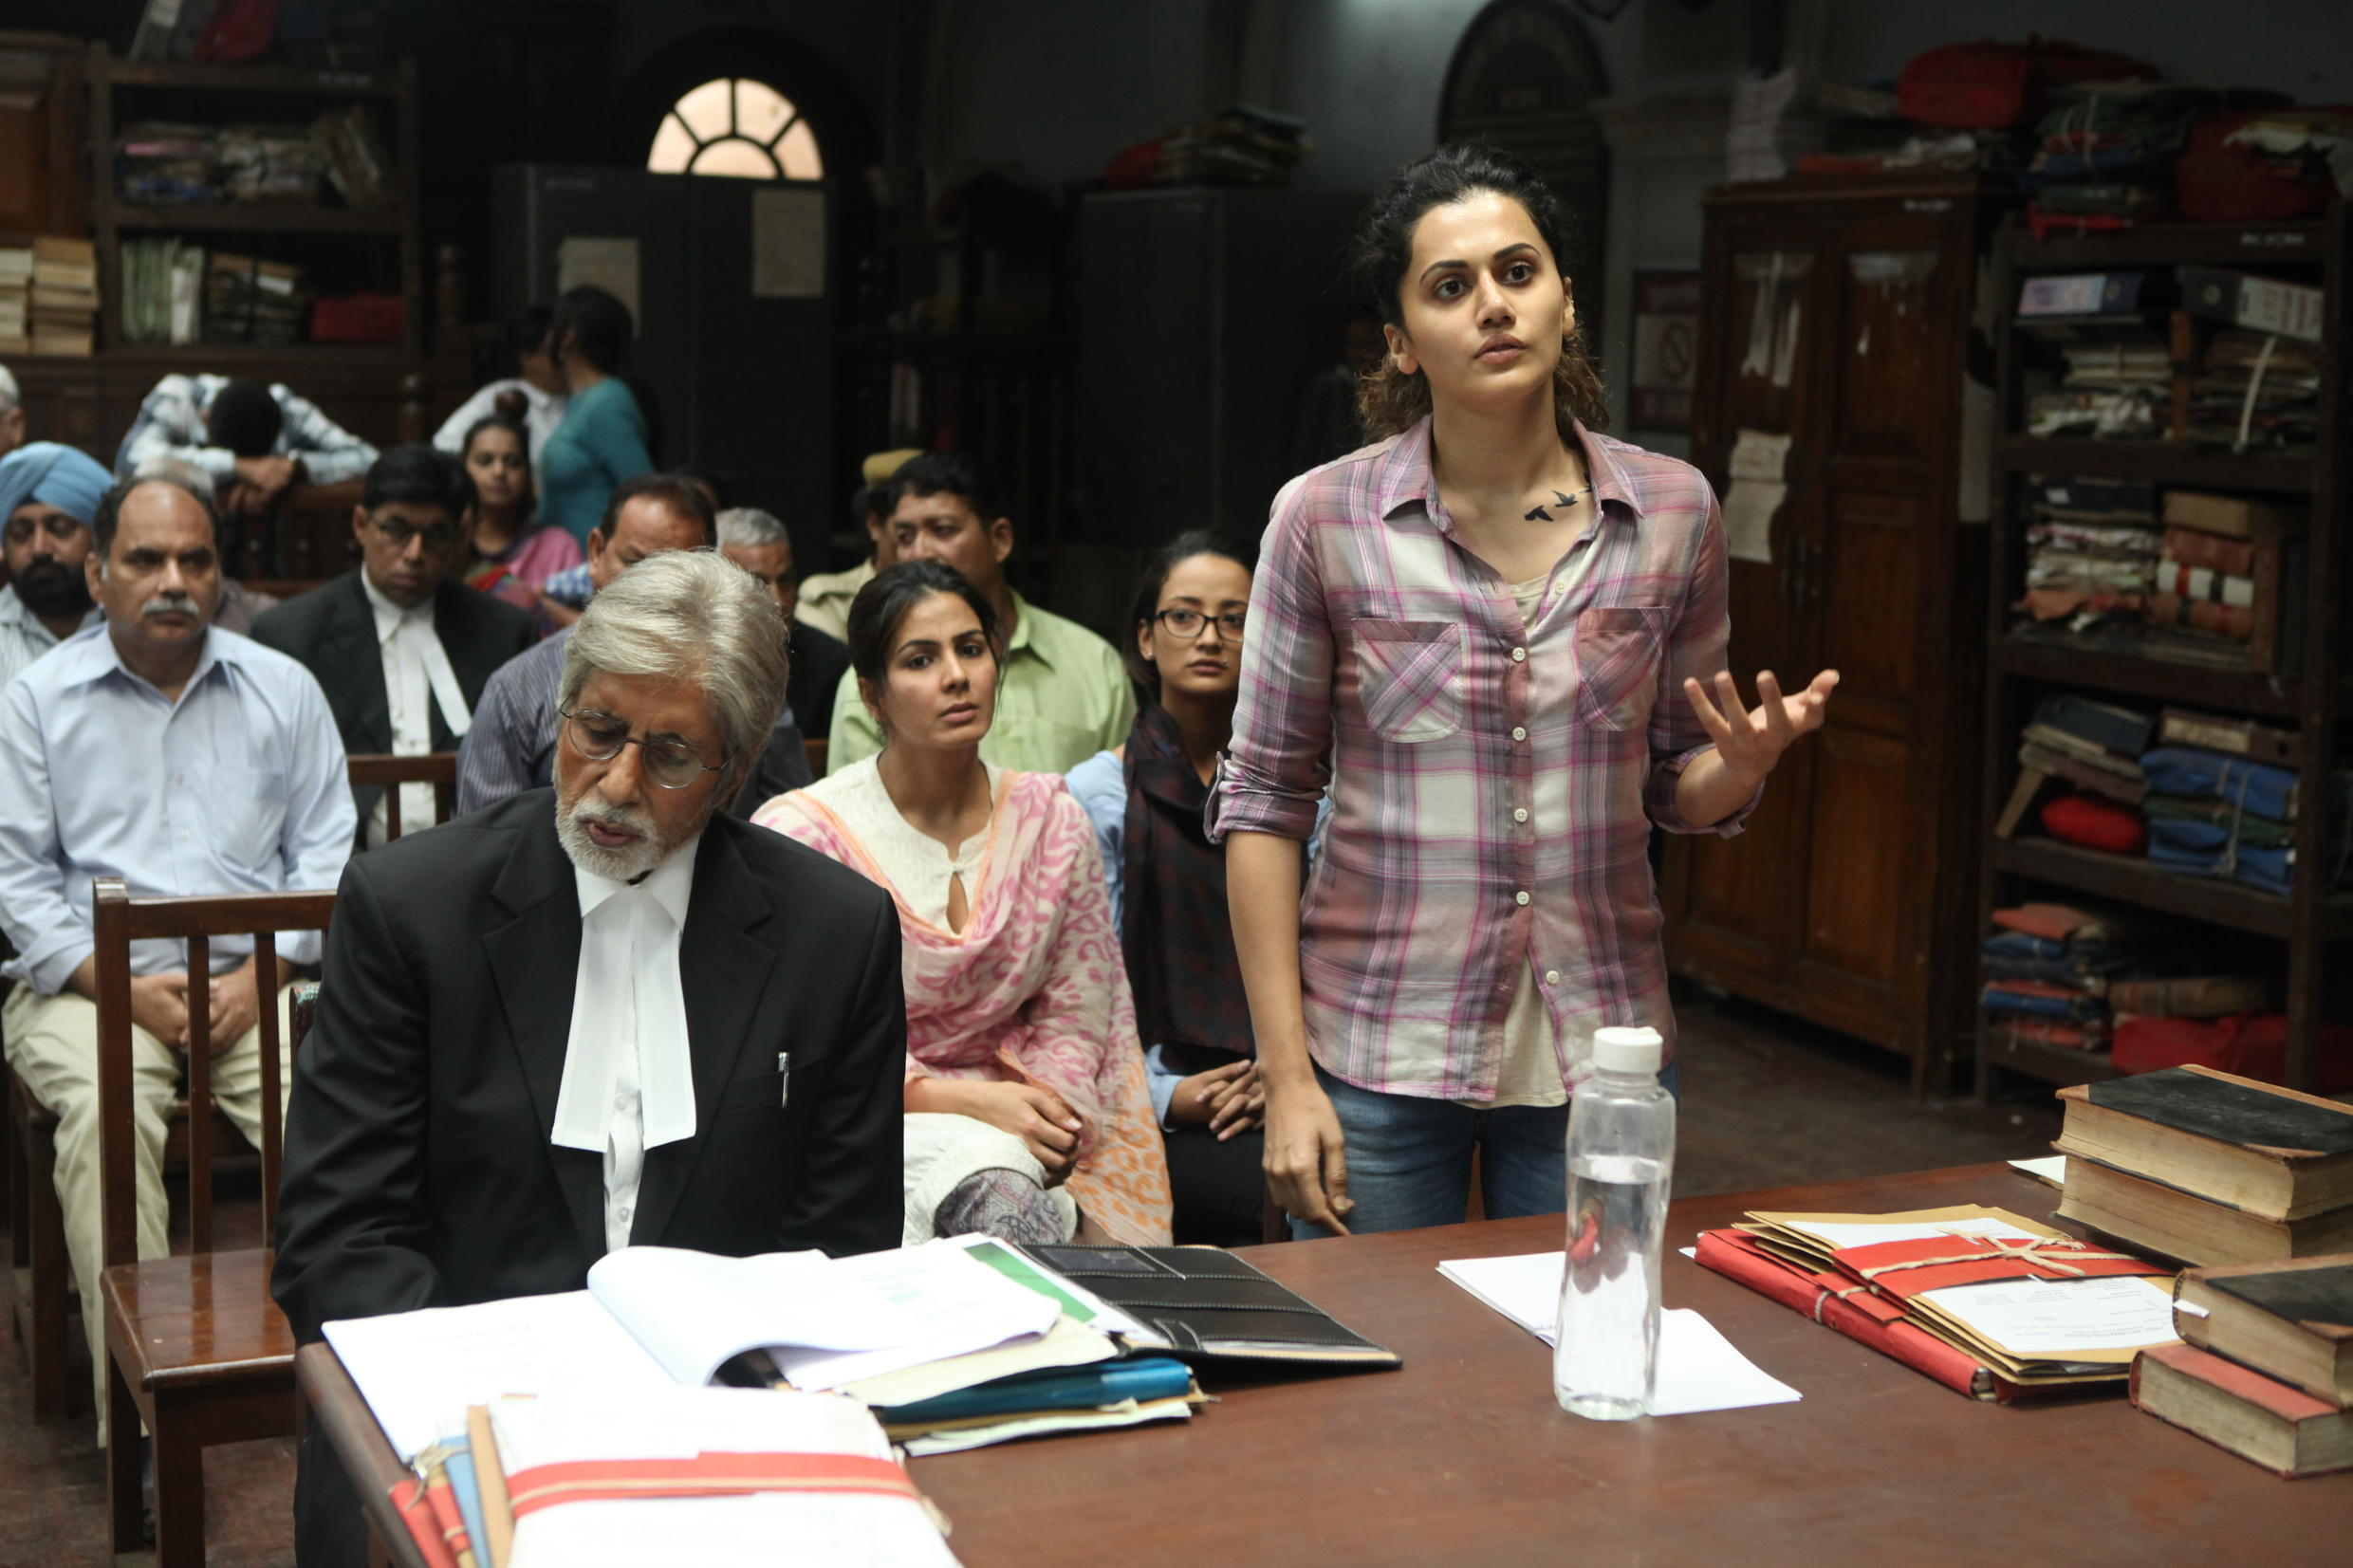 """Amitabh Bachan (Deepak Sehgal) and Tapasee Pannu (Minal Arora) in the movie Pink on women's right to say """"no"""" in cases of sexual assaults"""